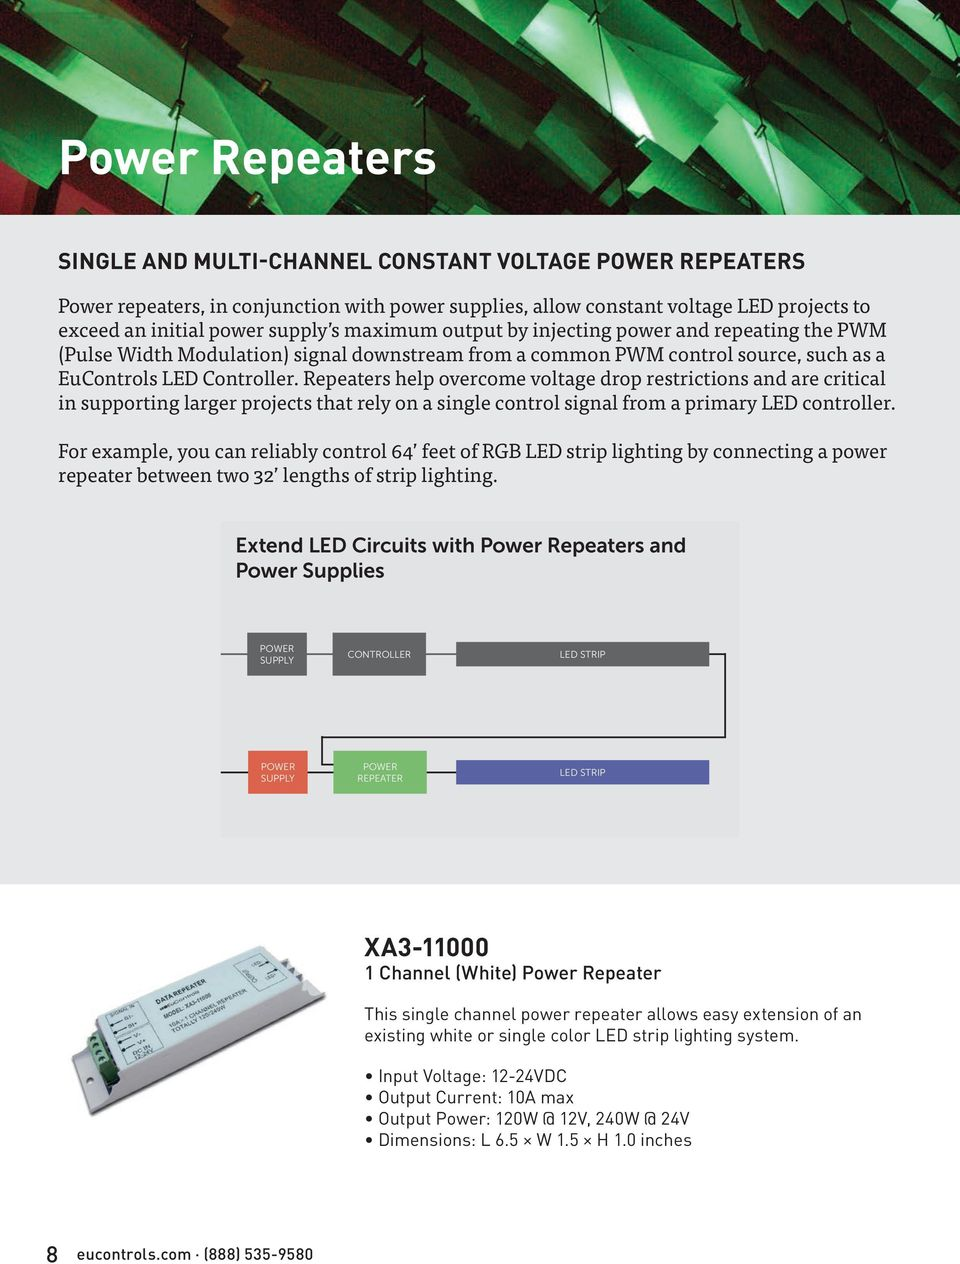 Product Catalog Pdf Home Led Dimmers Dimmer 3 Circuits Rgb 3a Max Repeaters Help Overcome Voltage Drop Restrictions And Are Critical In Supporting Larger Projects That Rely On